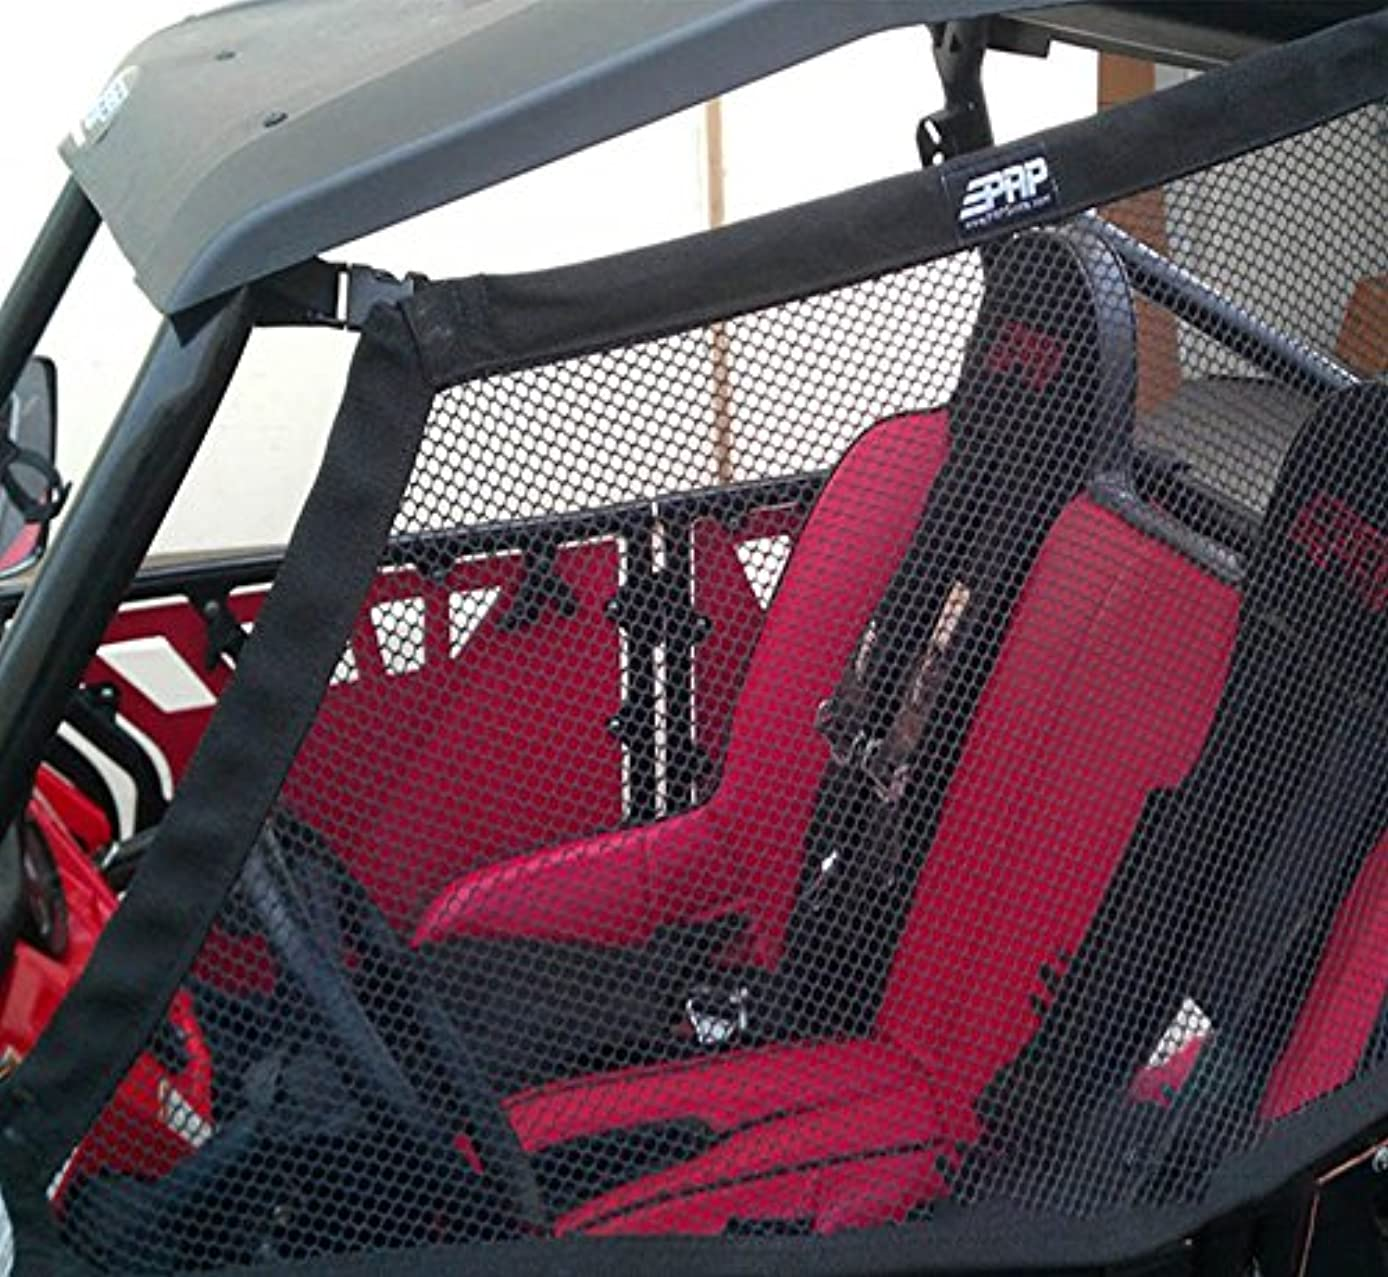 PRP Seats W10 Window Nets for a RZR 570, 800, 900 with stock Cage and Pro Armor doors